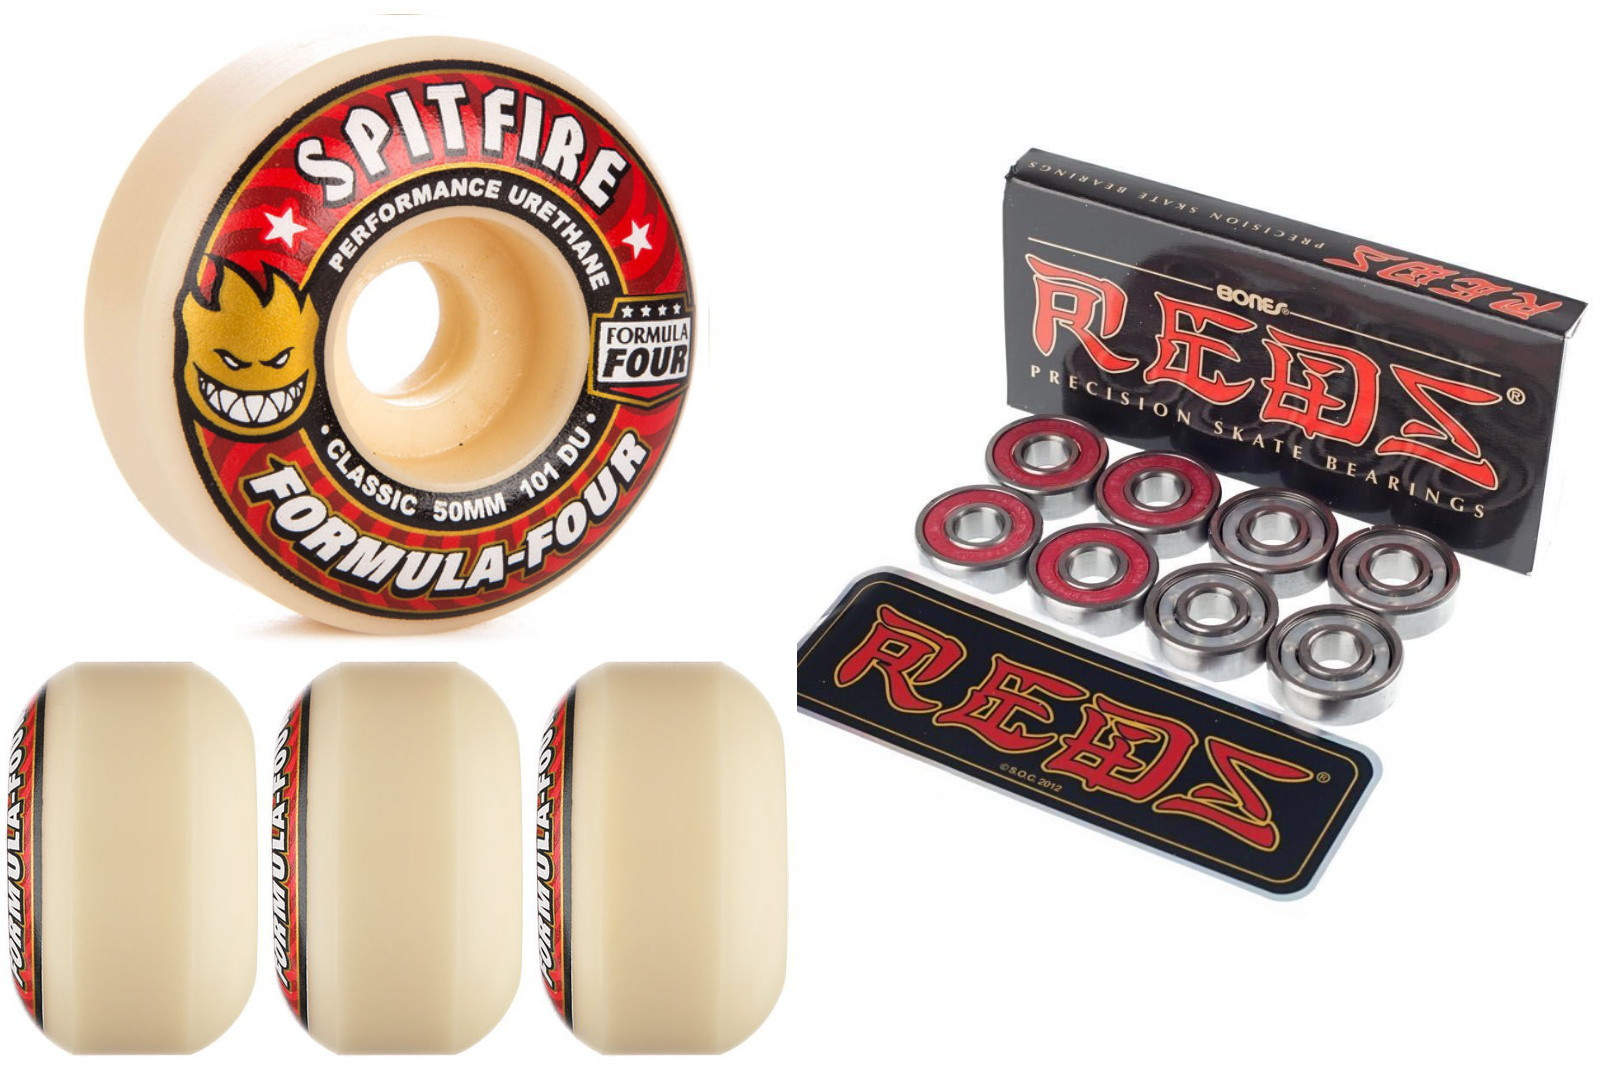 Spitfire Skateboard Wheels F4 Formula 4 Four Red 50mm 101d Classic with Bones Reds Bearings new FREE POST